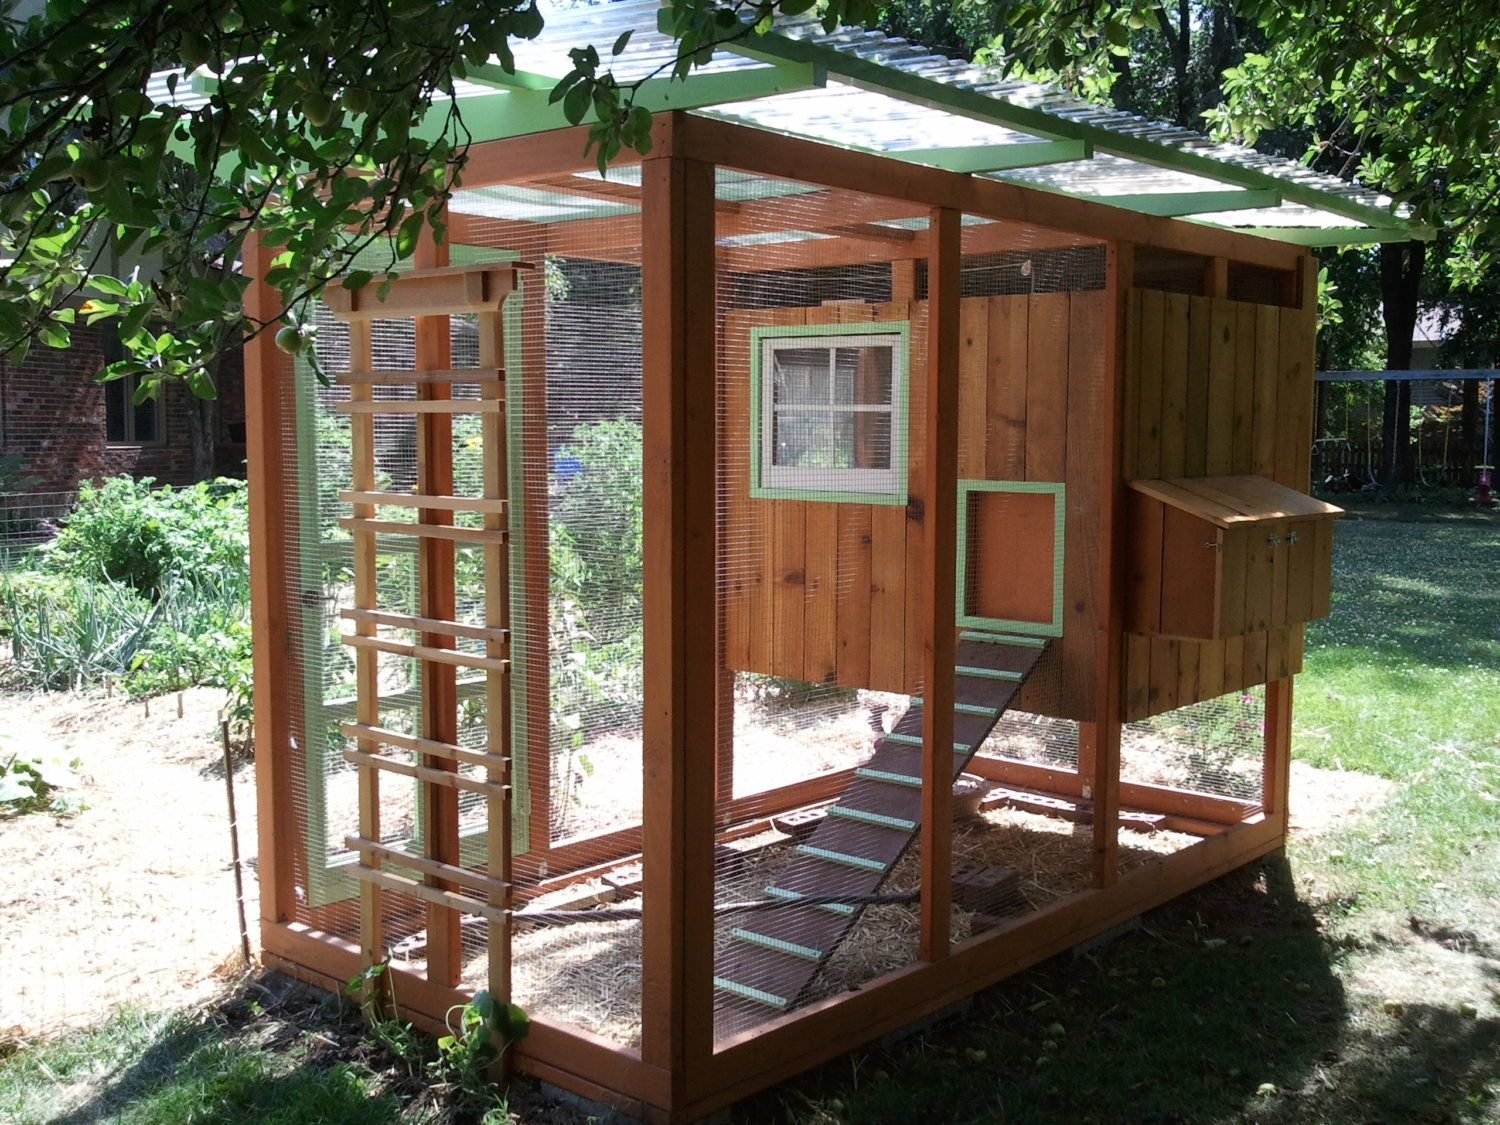 Backyard Chickens Coop : Of course, no coop is complete without chickens! We have 4 hens